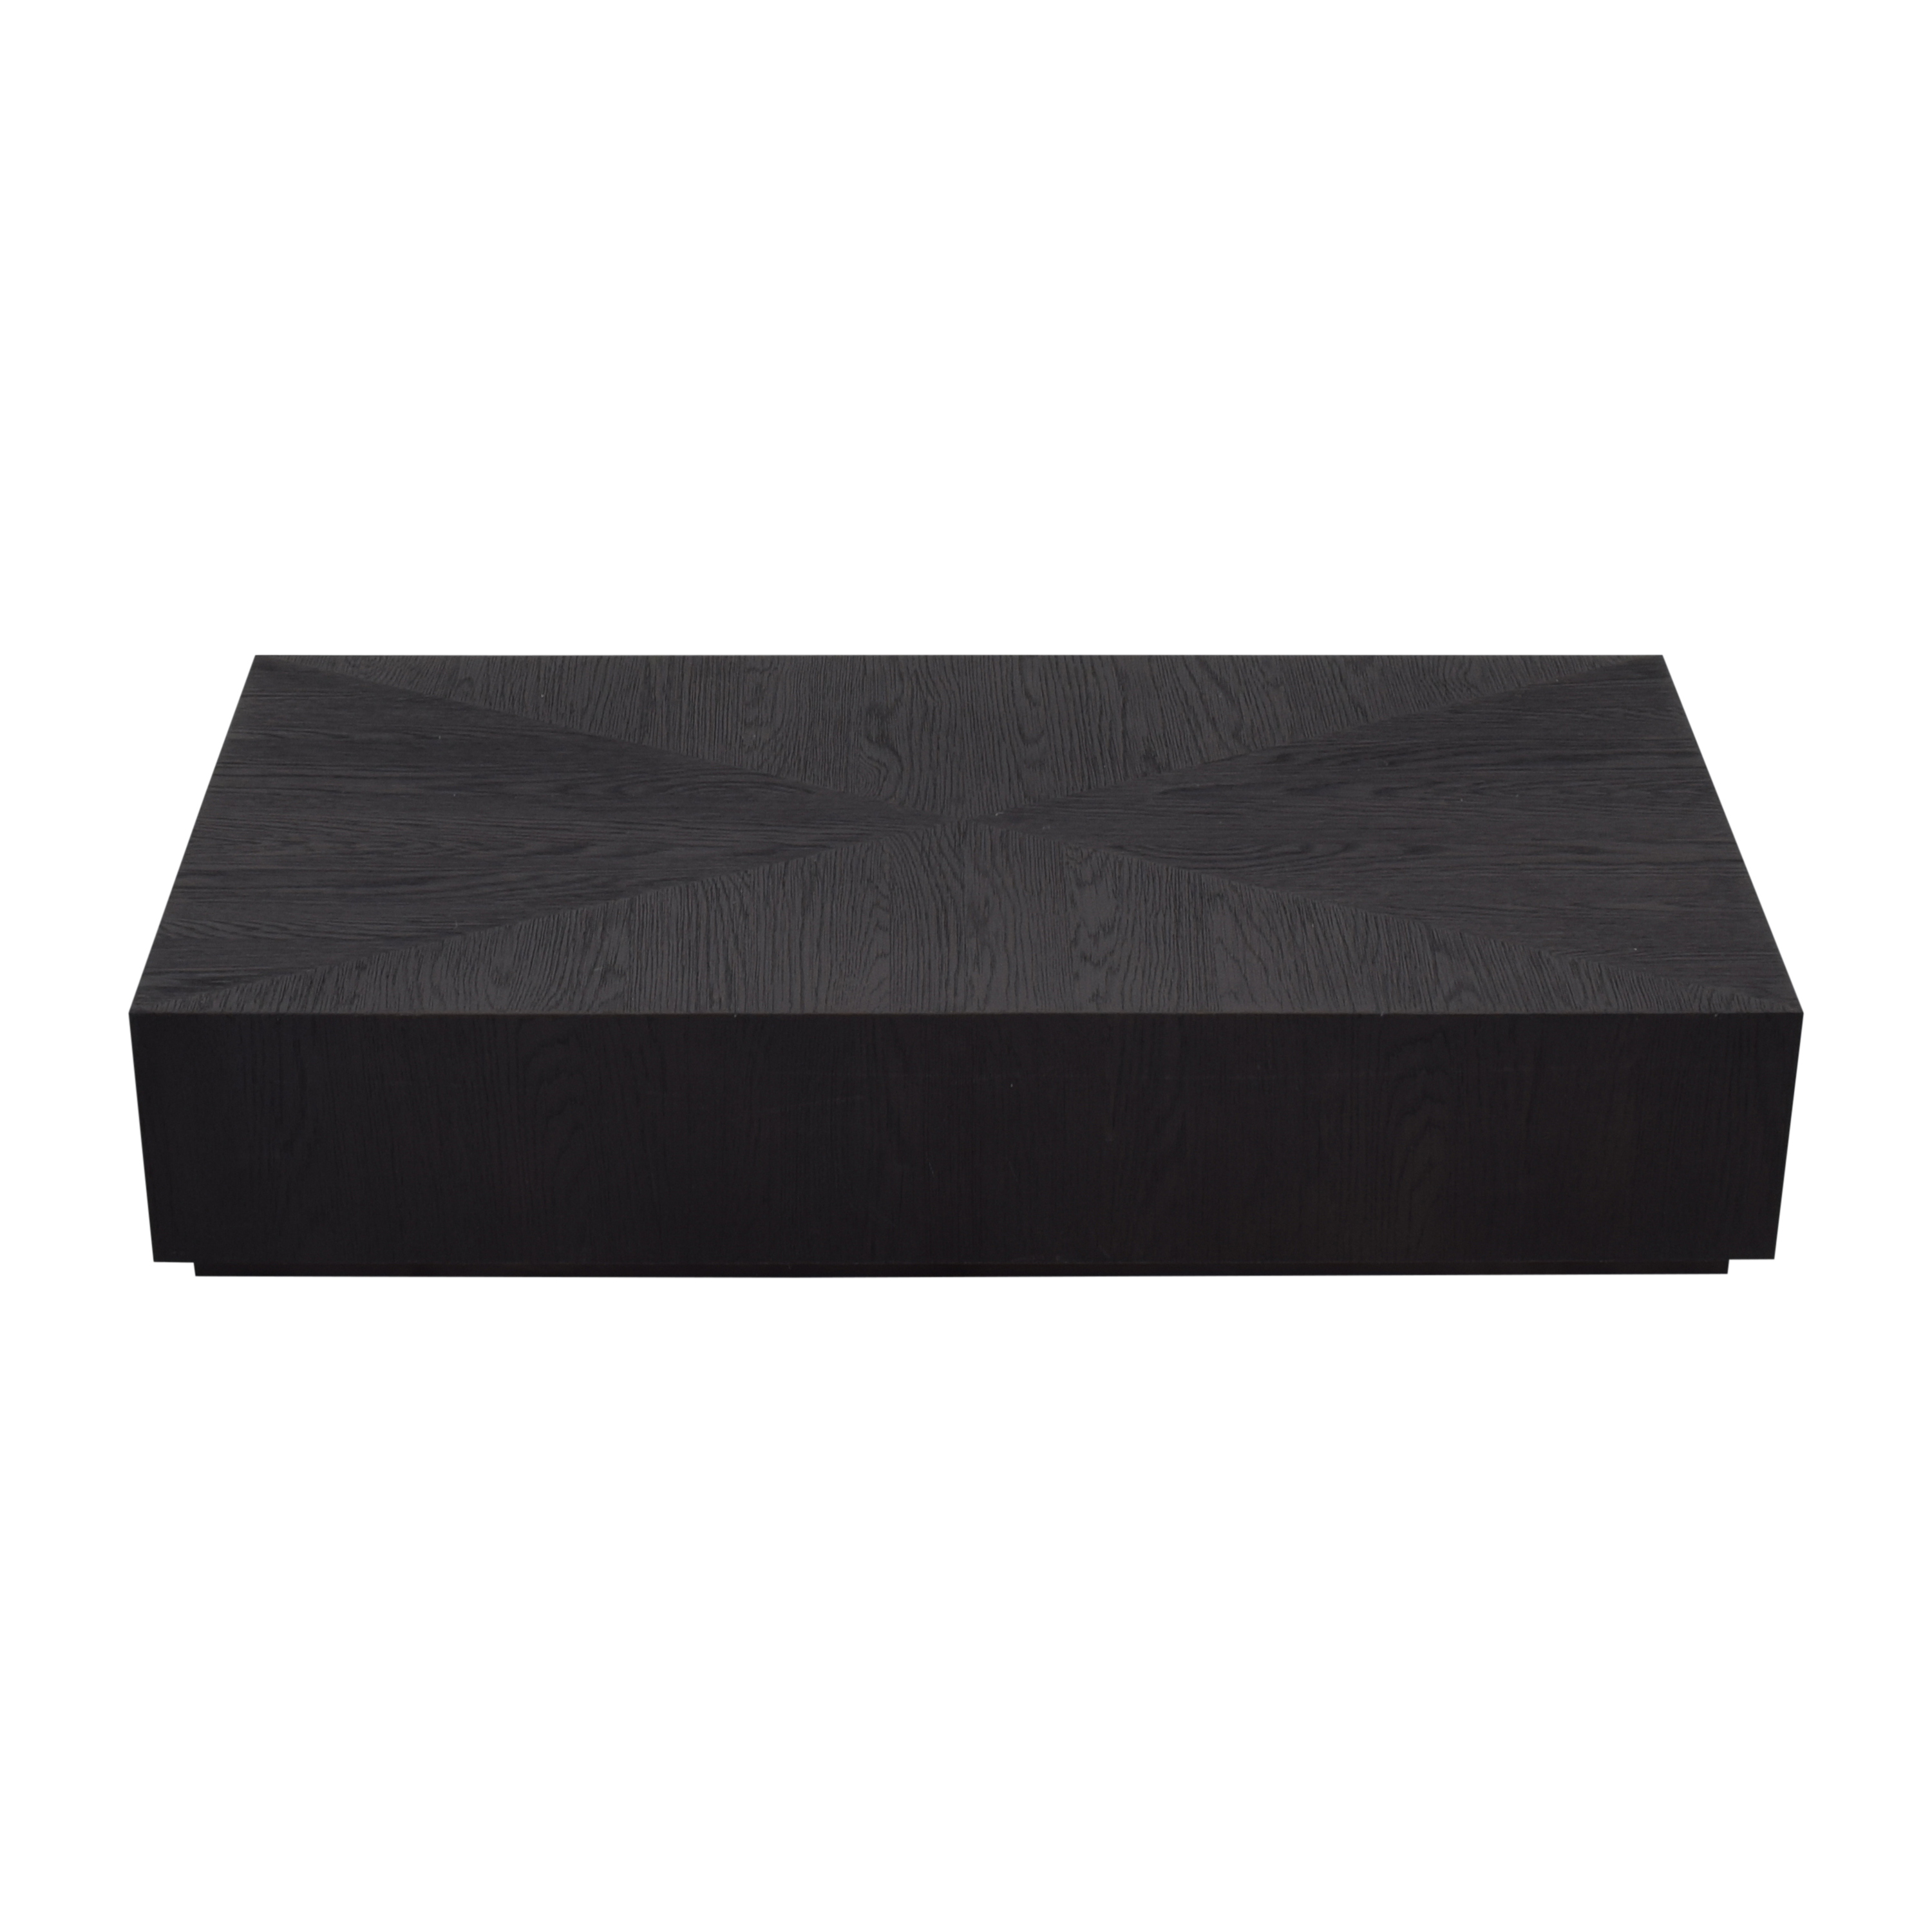 Restoration Hardware Restoration Hardware Rectangular Coffee Table dimensions